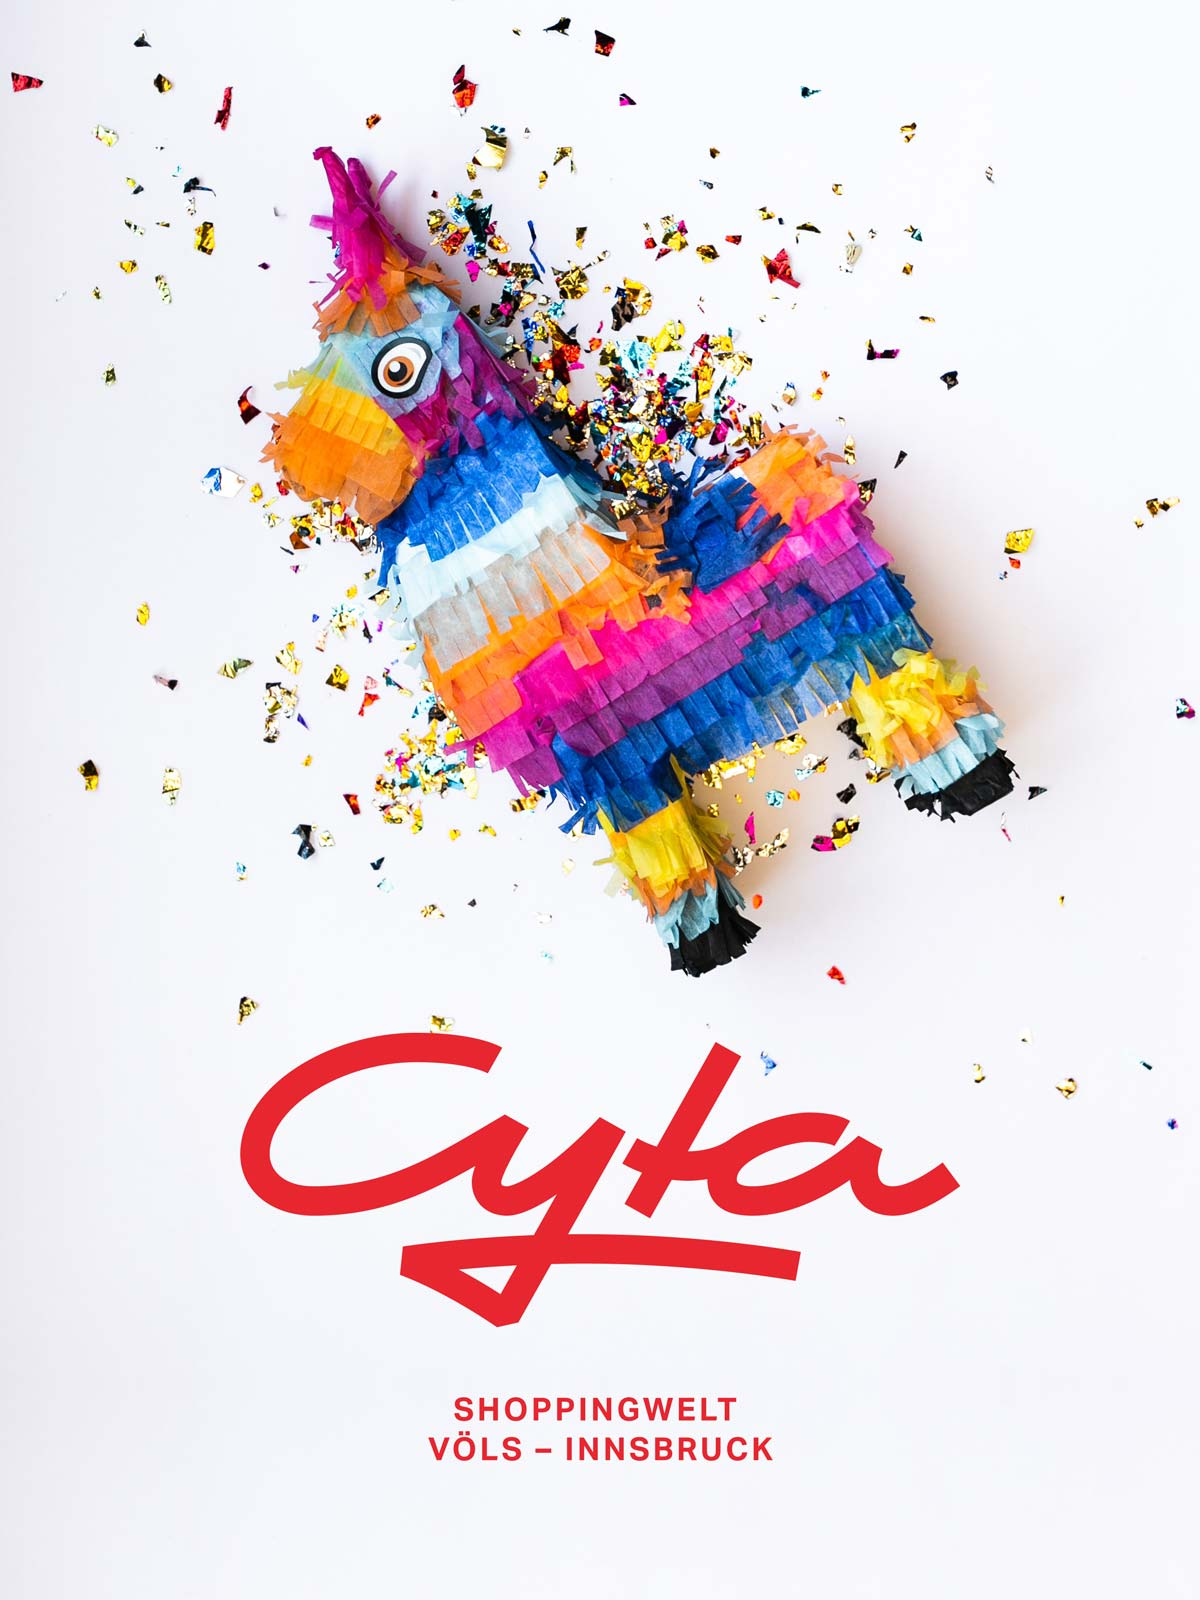 Cyta Shoppingwelt logo on photography of pinata by Brenna Huff from Unsplash